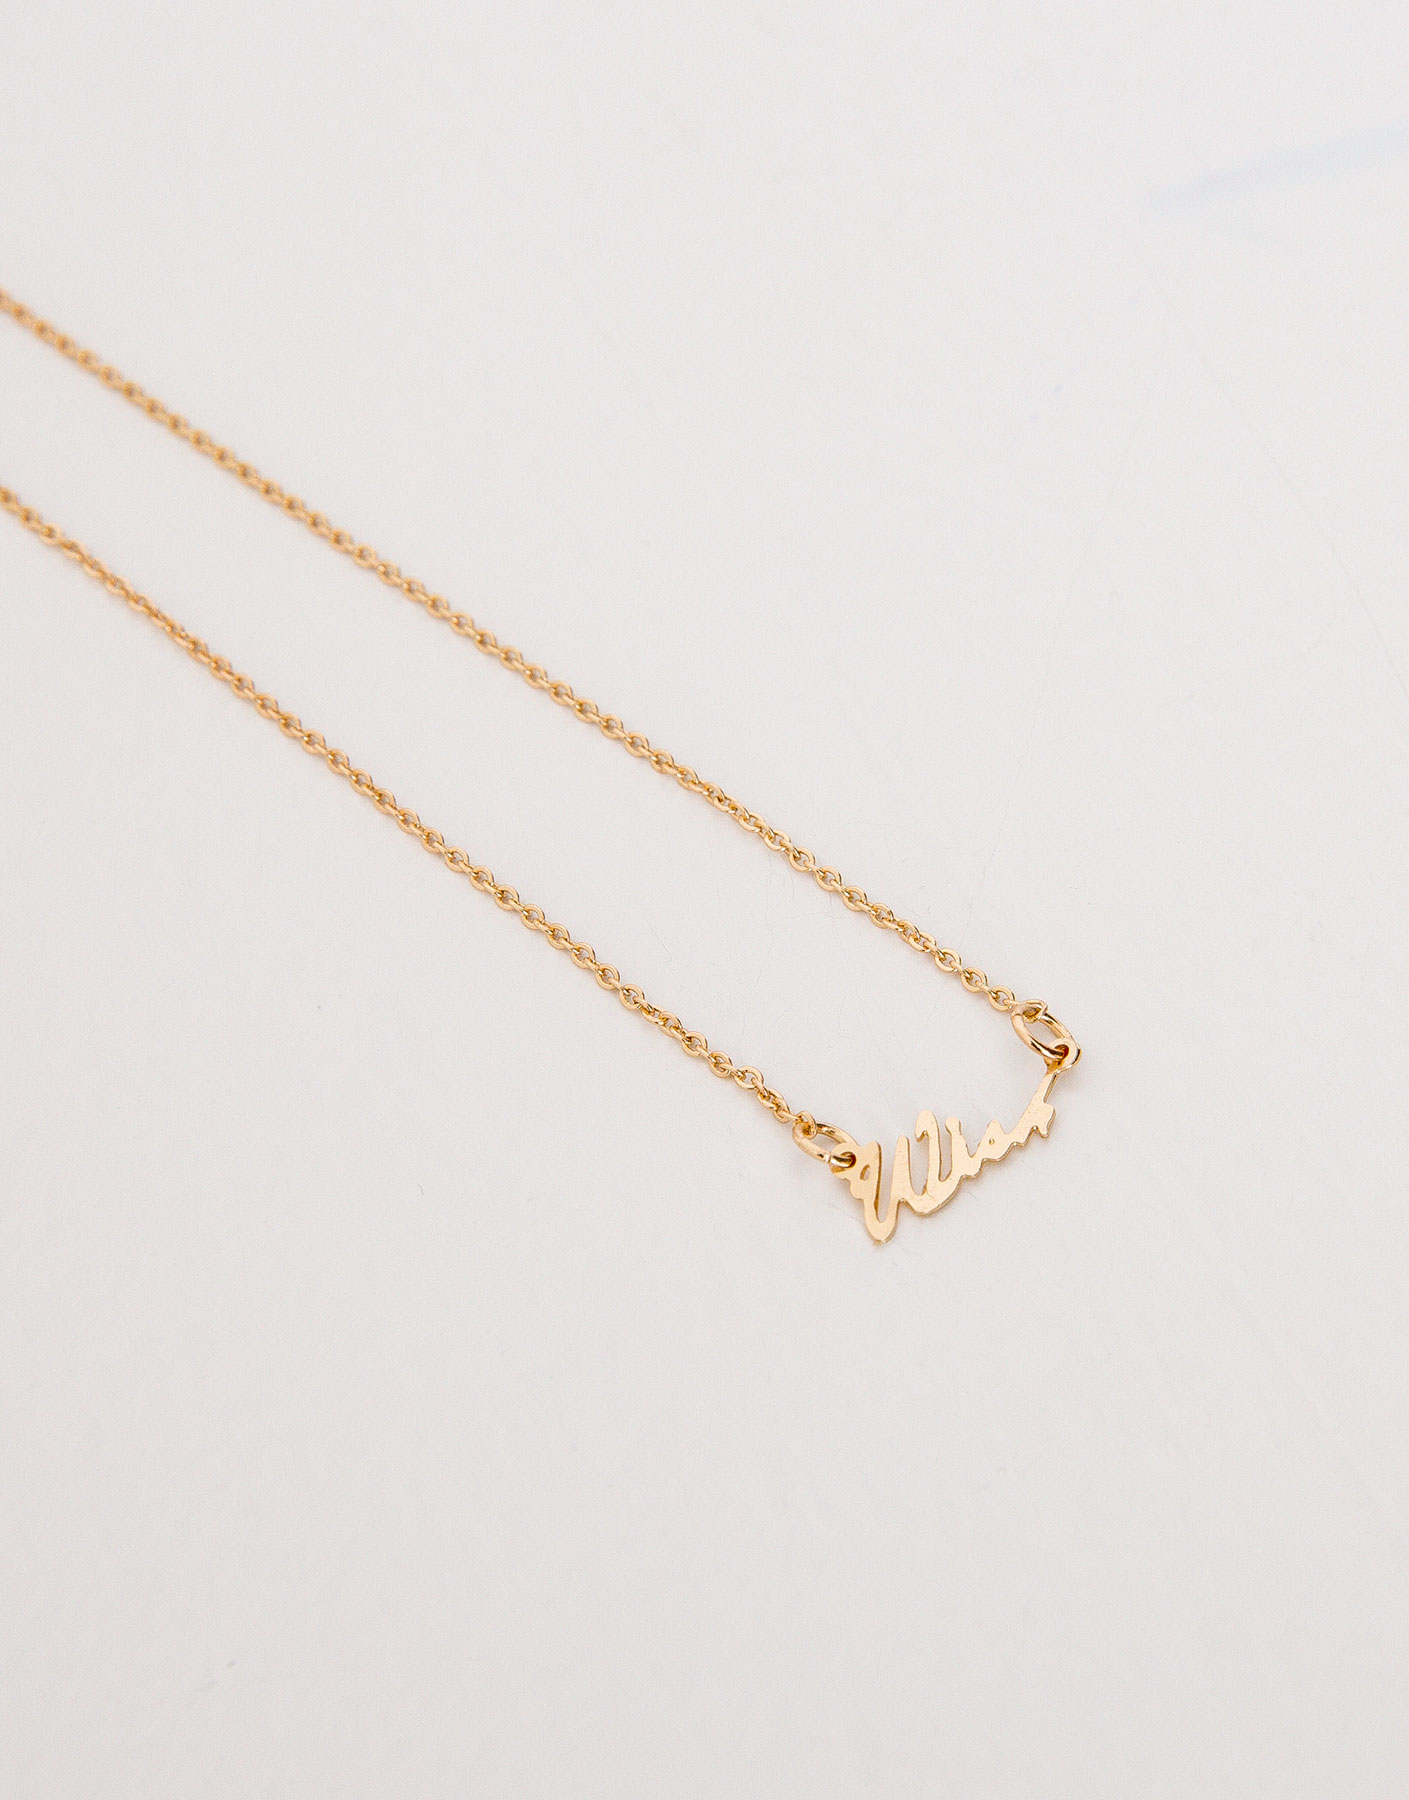 Fine wish necklace